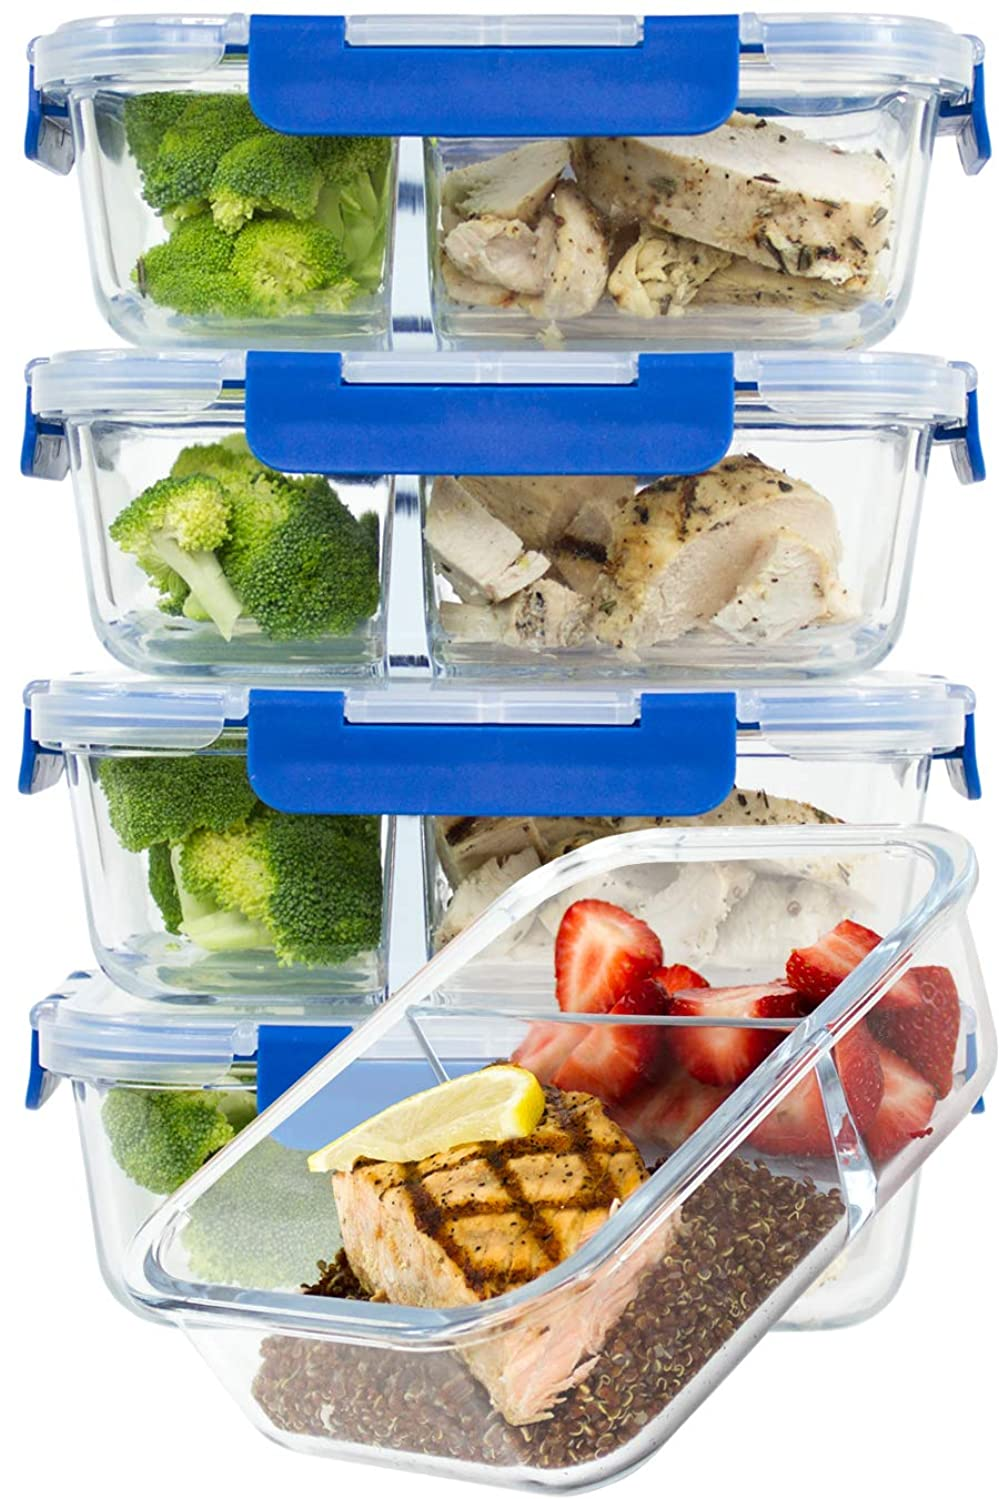 [LARGER PREMIUM 5 SET] 2 Compartment Glass Meal Prep Containers with Lifetime Lasting Snap Locking Lids Glass Food Containers BPA-Free, Microwave, Oven, Freezer and Dishwasher Safe (4.8 Cups, 39 Oz.)